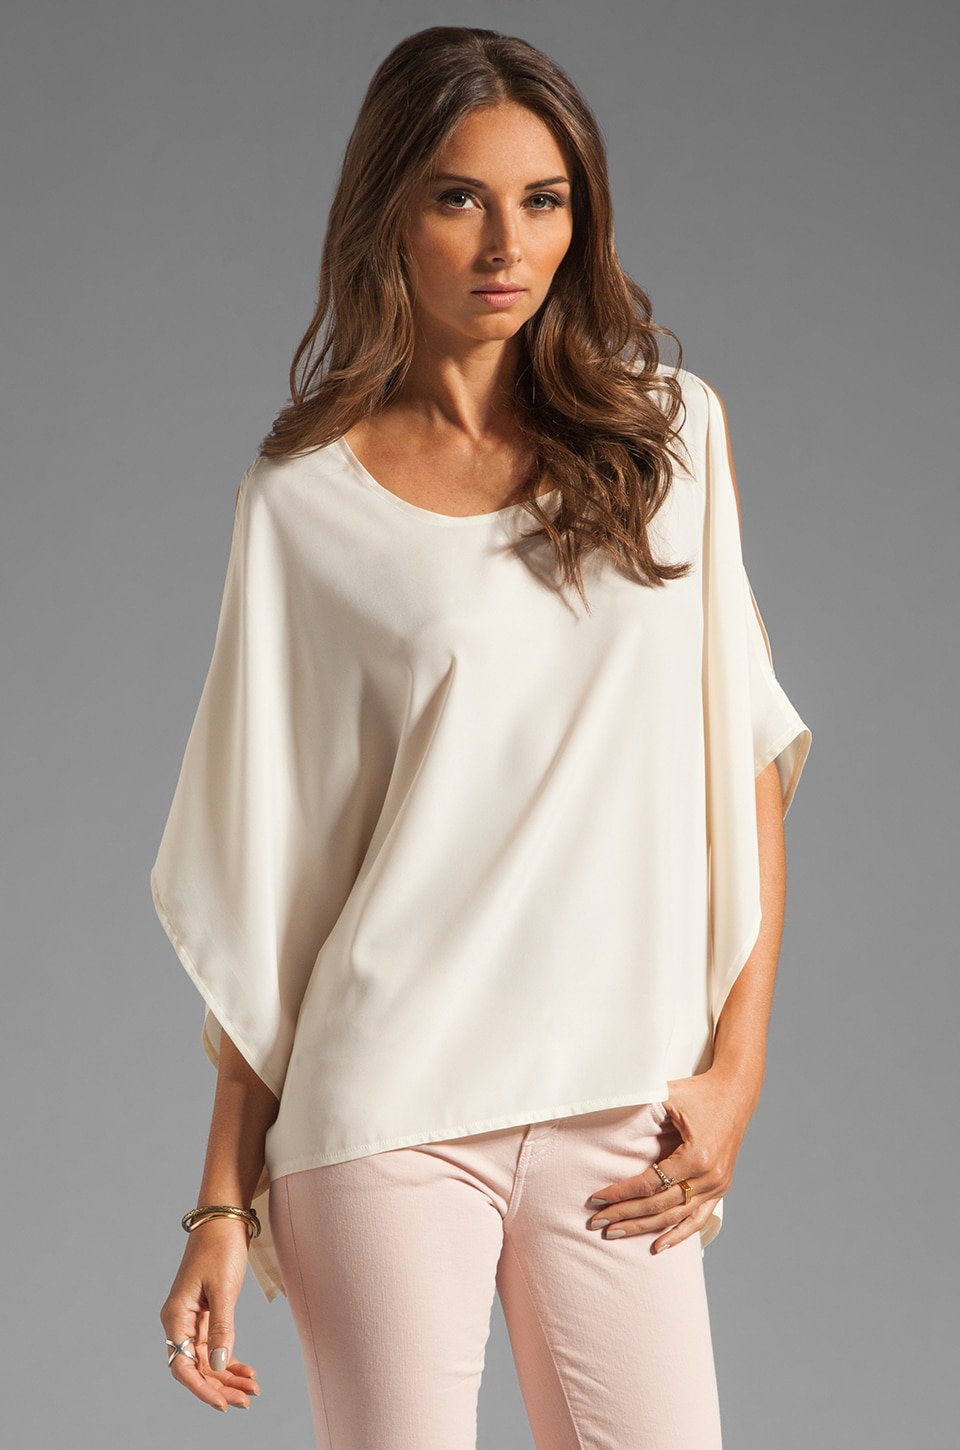 BLAQUE LABEL Open Shoulder Top in Cream